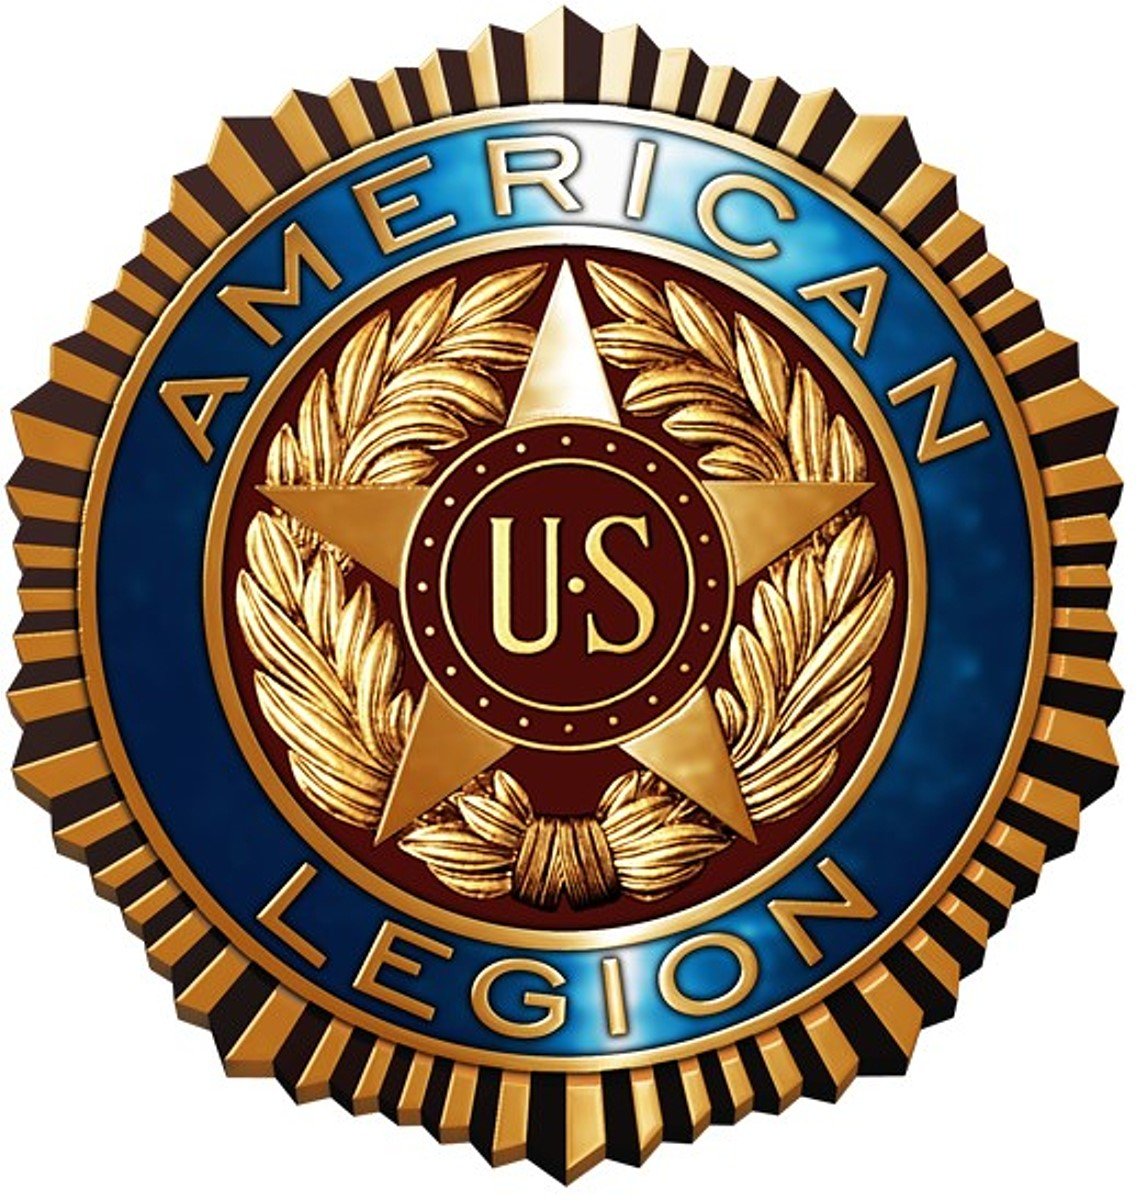 Trident Society and American Legion - Department of Florida